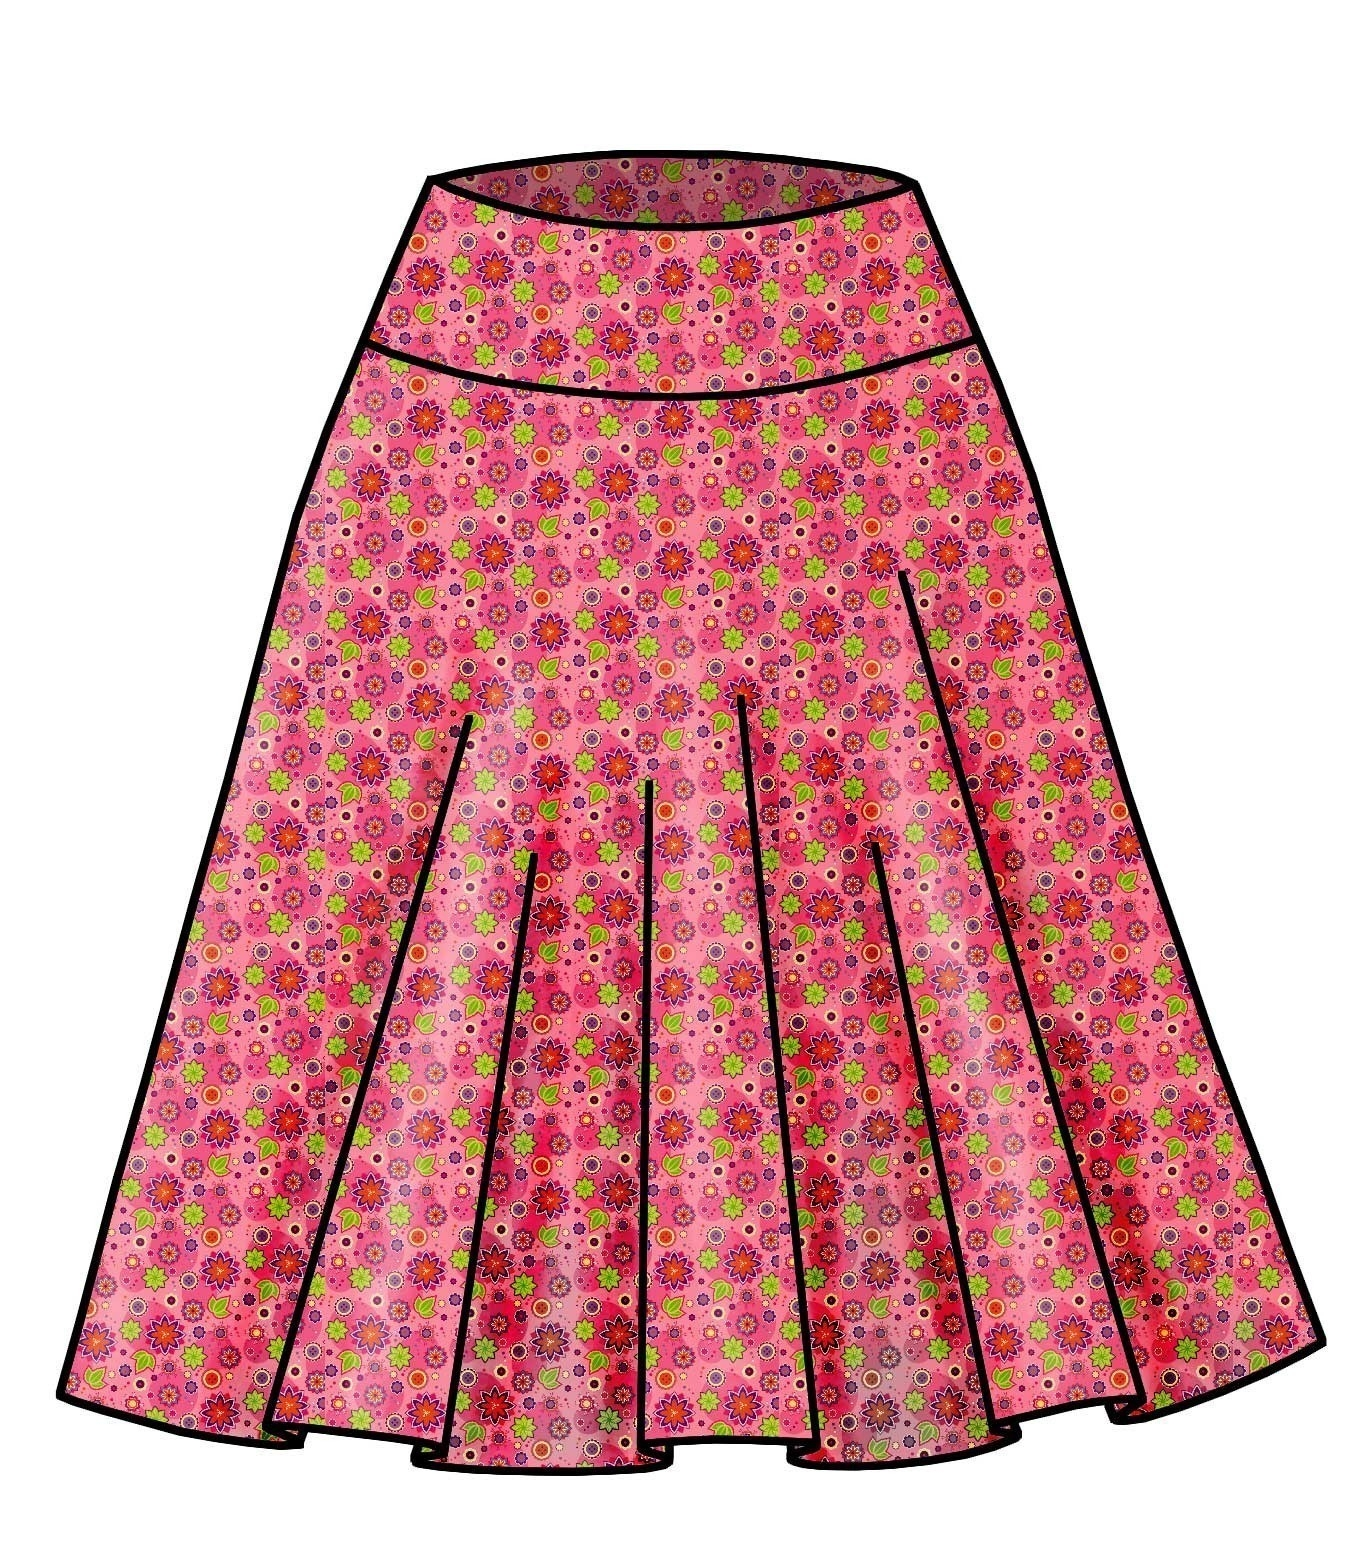 Skirt clipart Unique Skirt Clipart Free Download Clip Art.